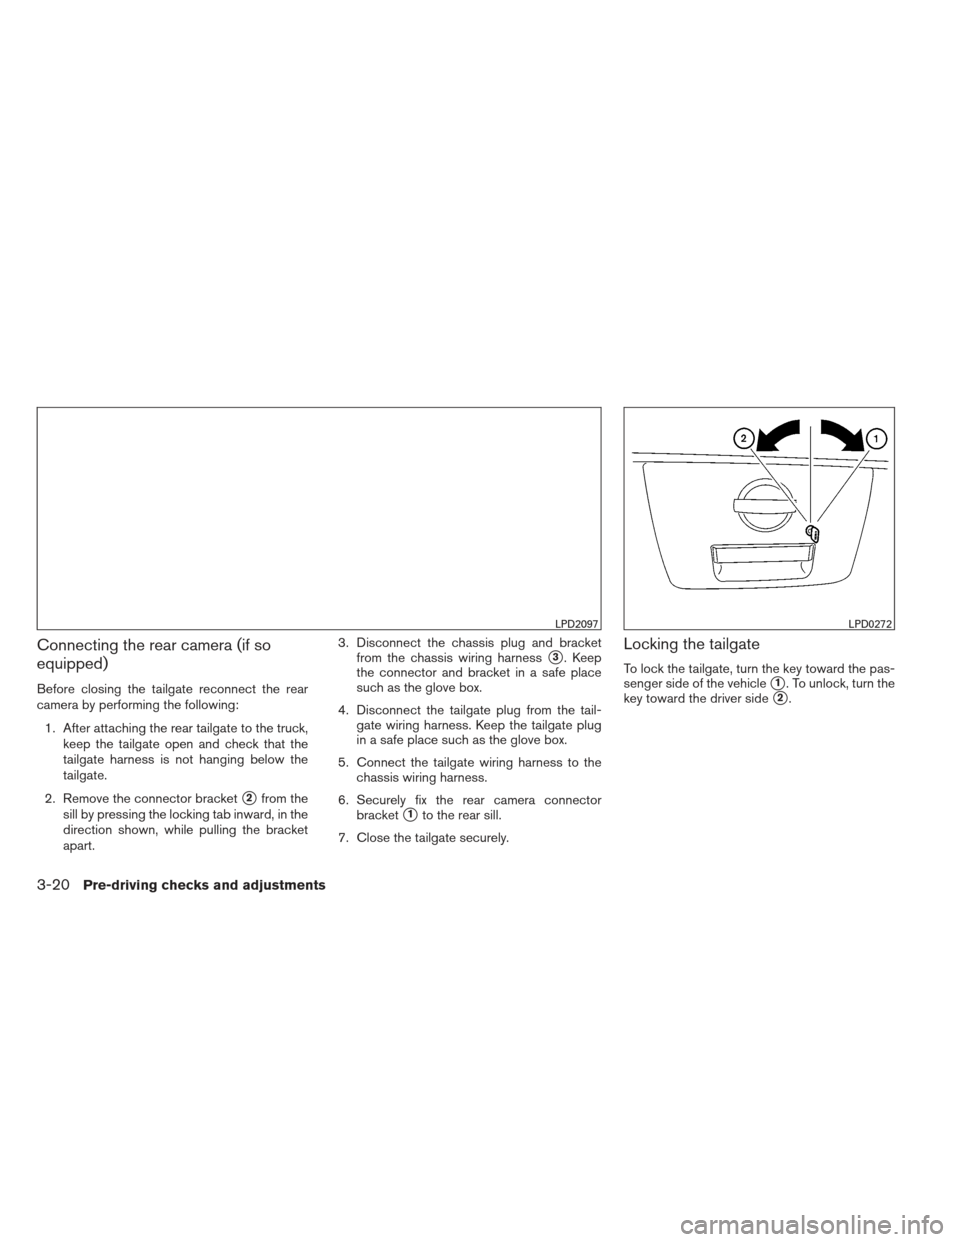 NISSAN FRONTIER 2013 D40 / 2.G Owners Manual Connecting the rear camera (if so equipped) Before closing the tailgate reconnect the rear camera by performing the following:1. After attaching the rear tailgate to the truck, keep the tailgate open